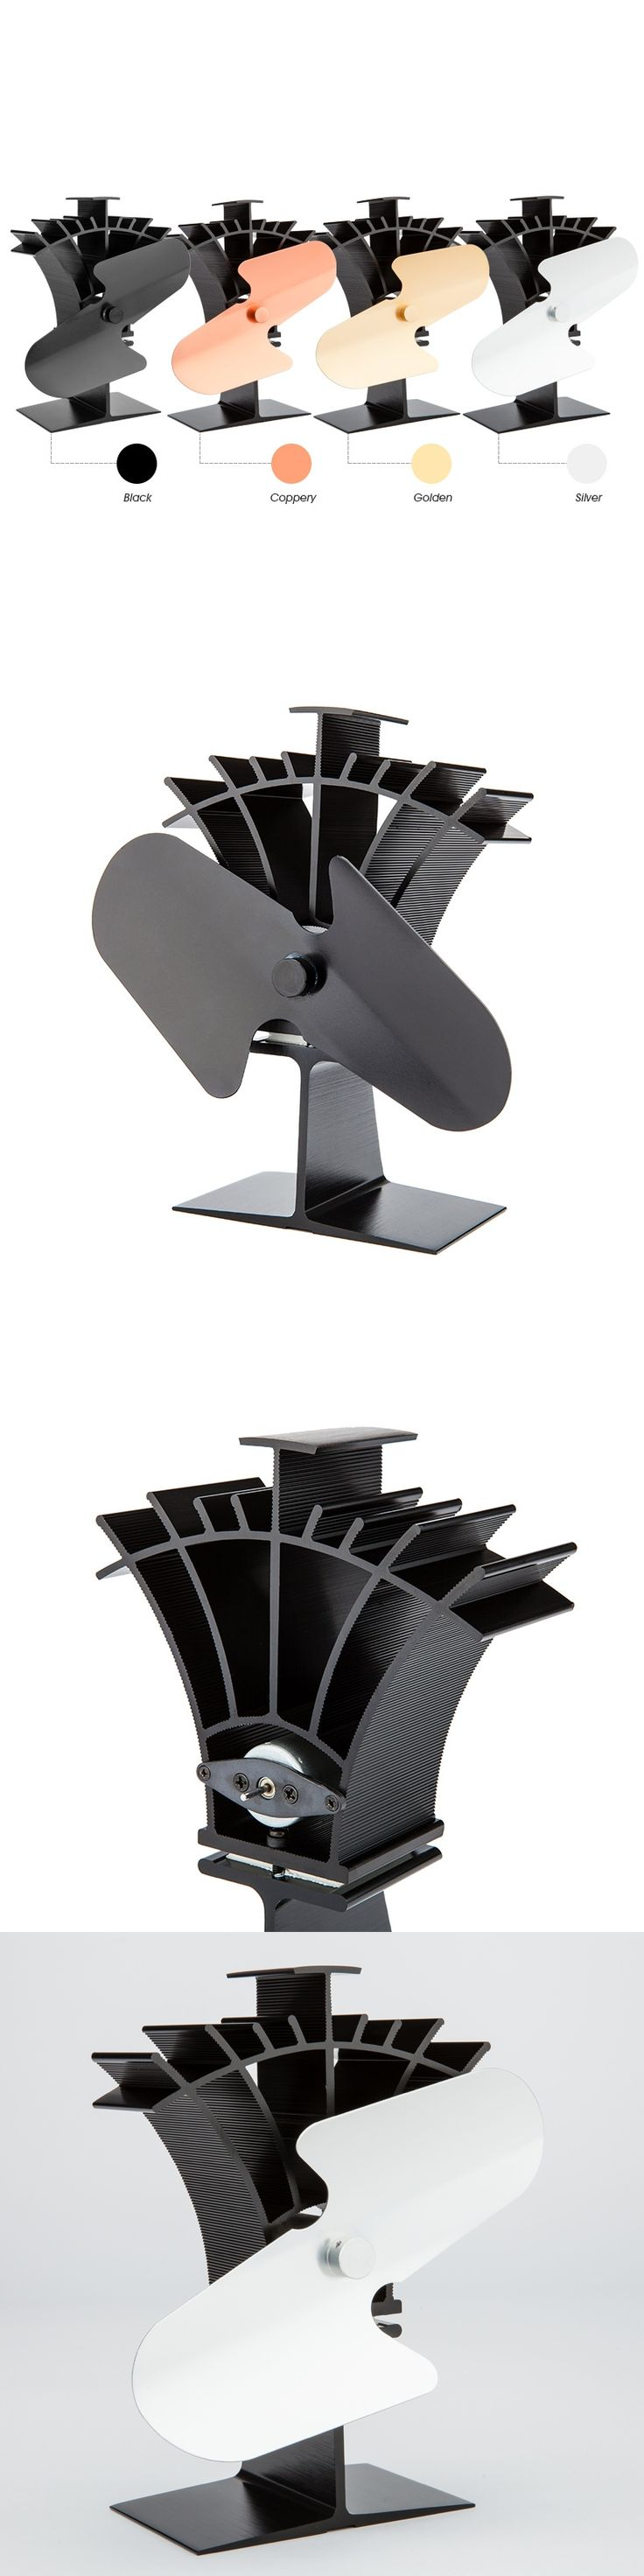 Generate Its Own Power by Heat Eco Friendly Anodized Aluminum 2 Blade Heat Powered Stove Fan